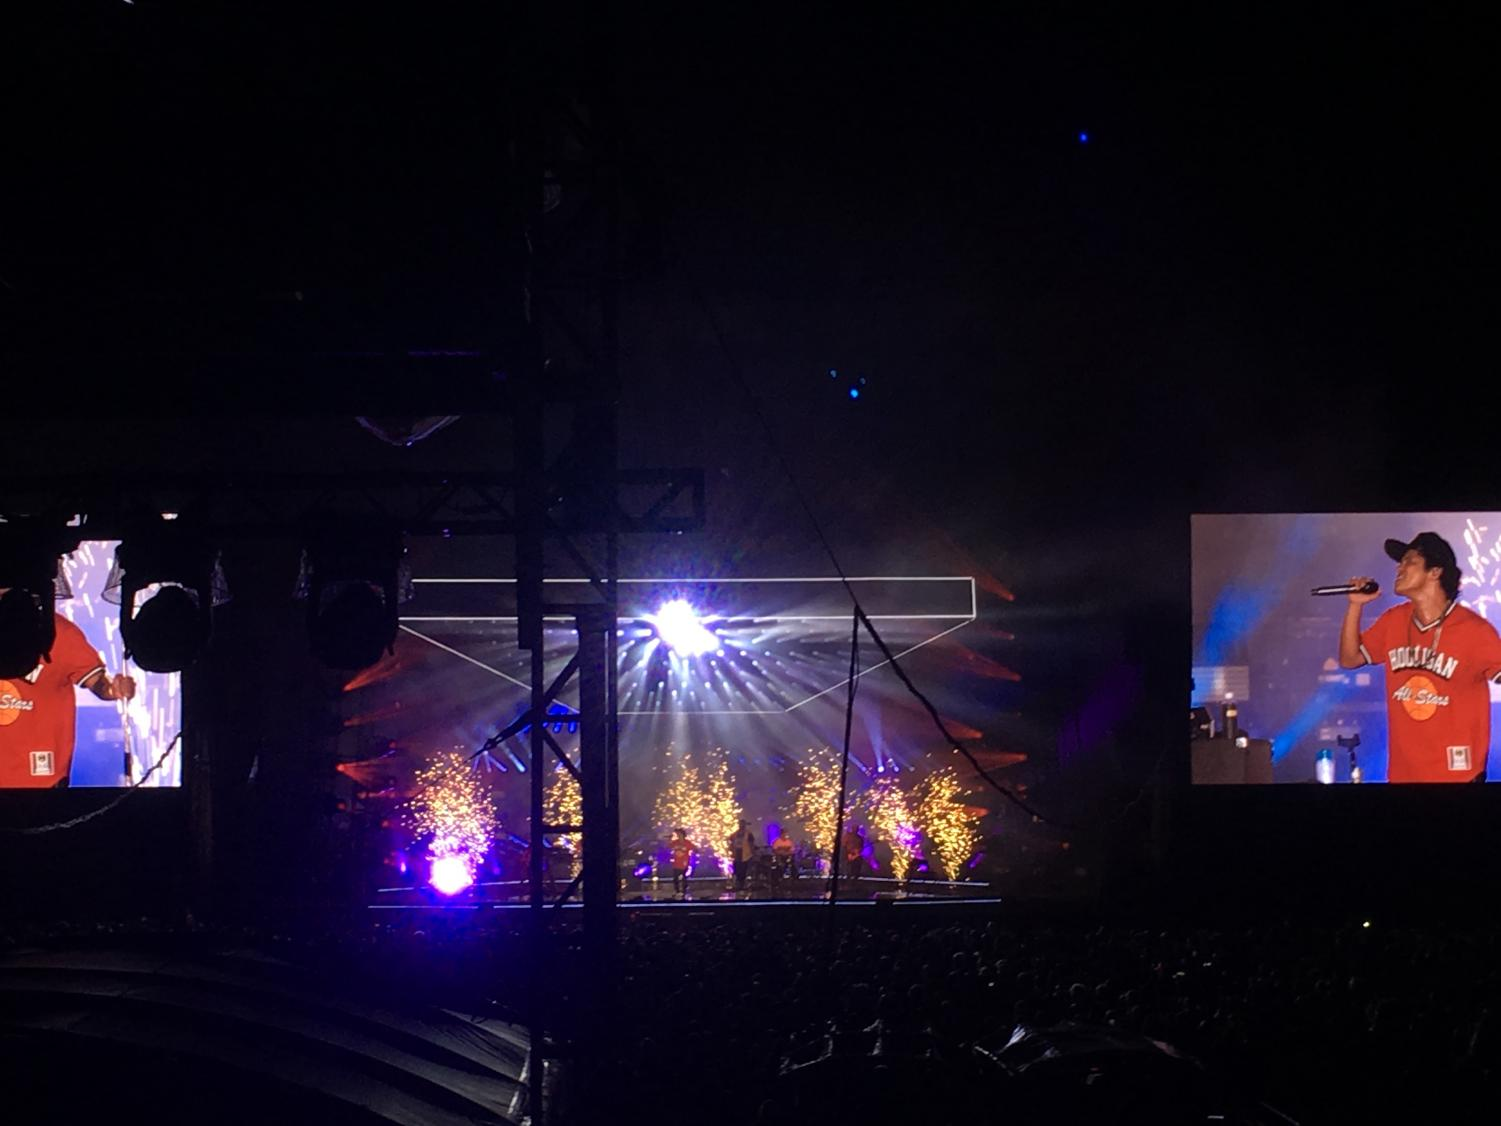 Small+fireworks+light+up+behind+Bruno+Mars+as+he+sings+%2224K+Magic%22+in+the+middle+of+the+stage.